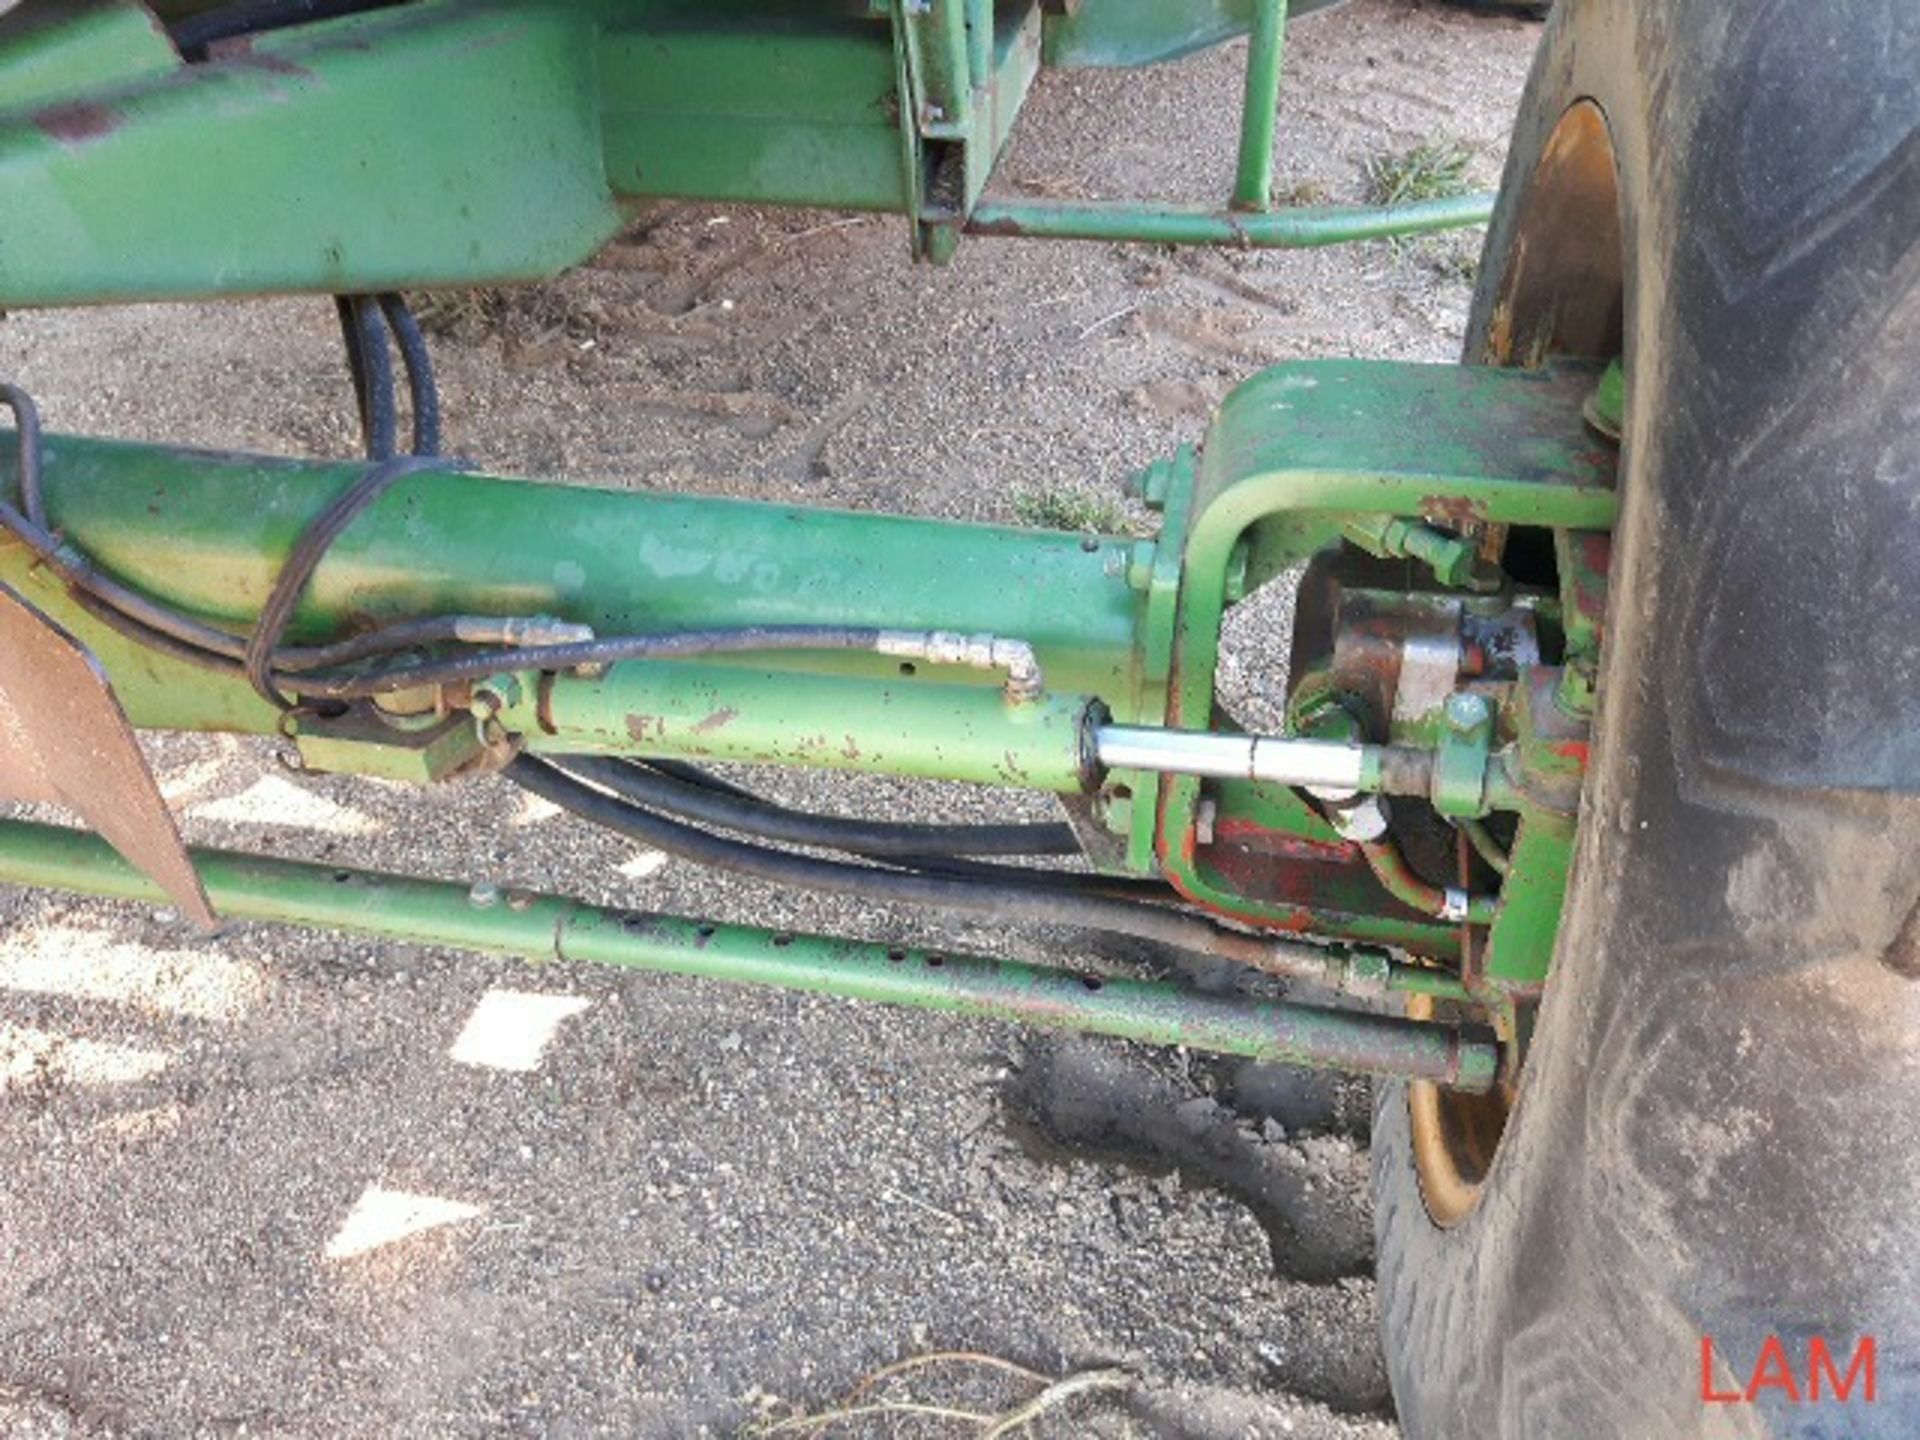 8820 JD Combine Hydrostatic Drive, 3315hrs, c/w New Headliner and padding, to arrive beginning of - Image 7 of 14